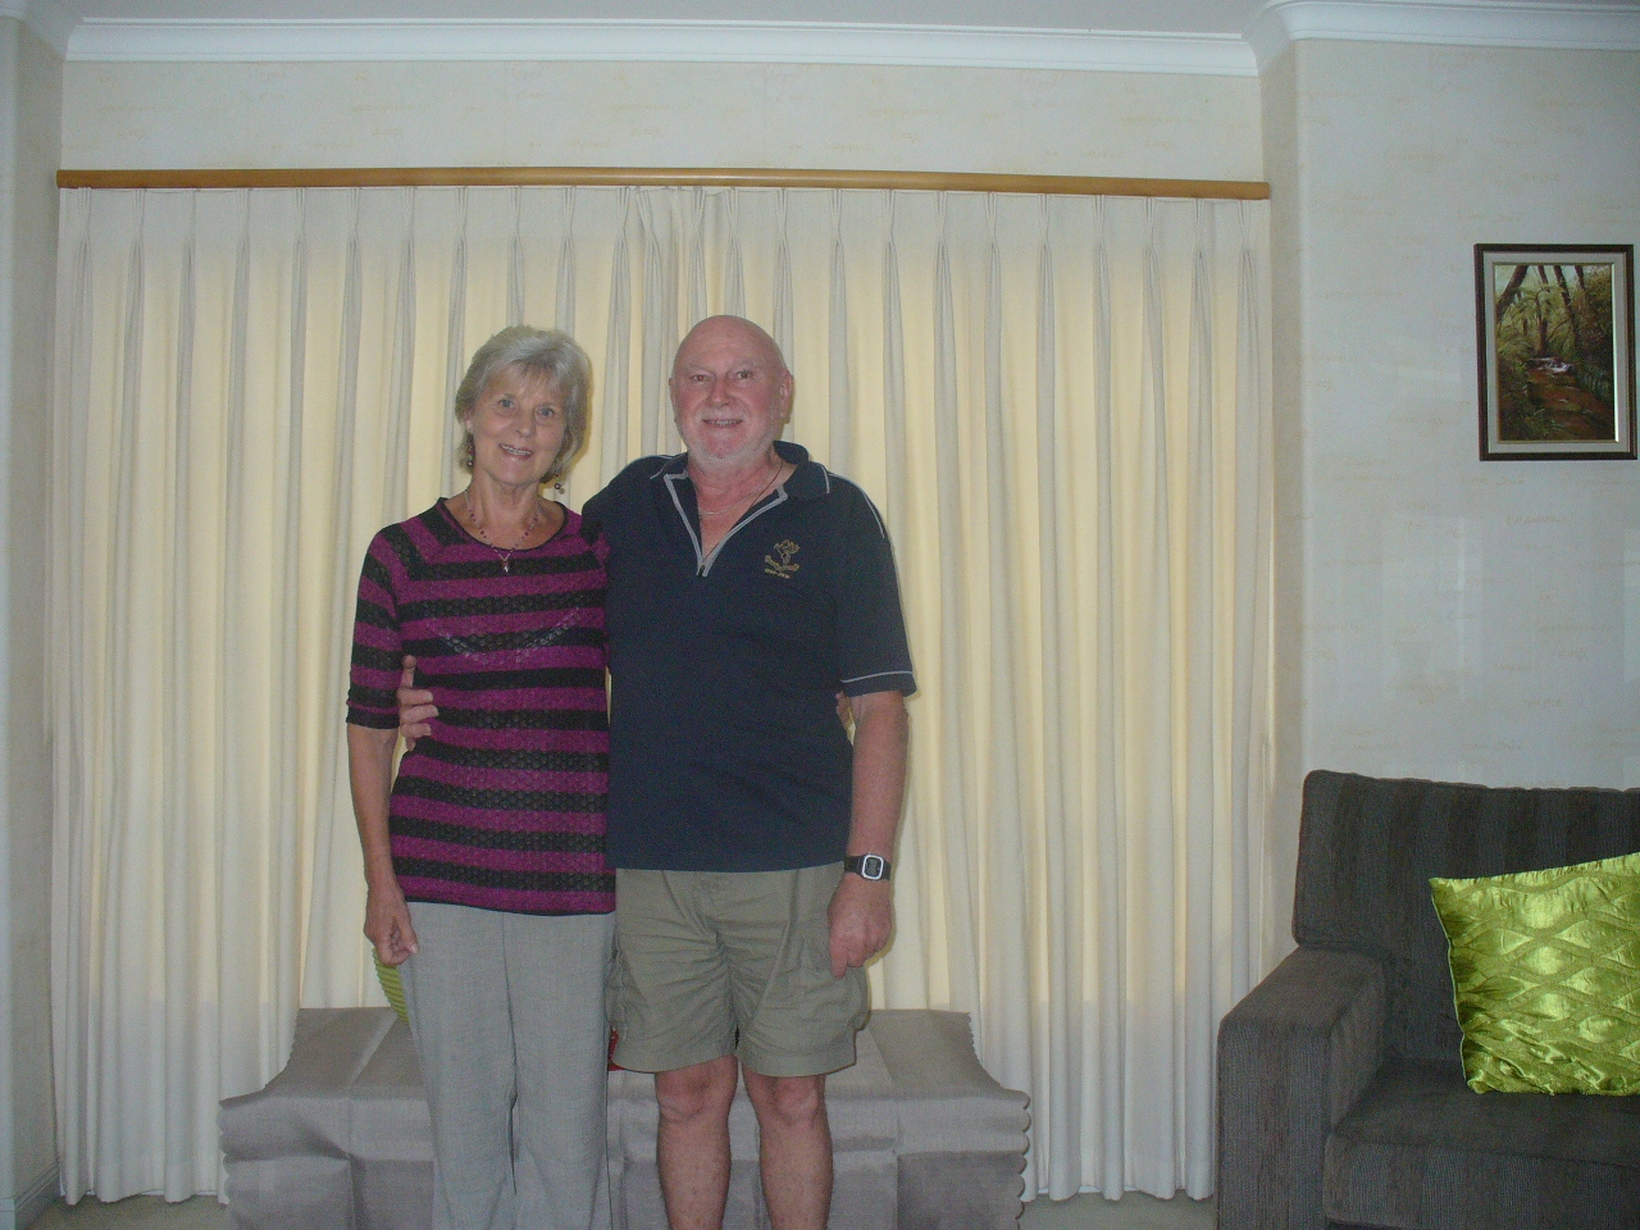 Judy & Gary from Papamoa, New Zealand